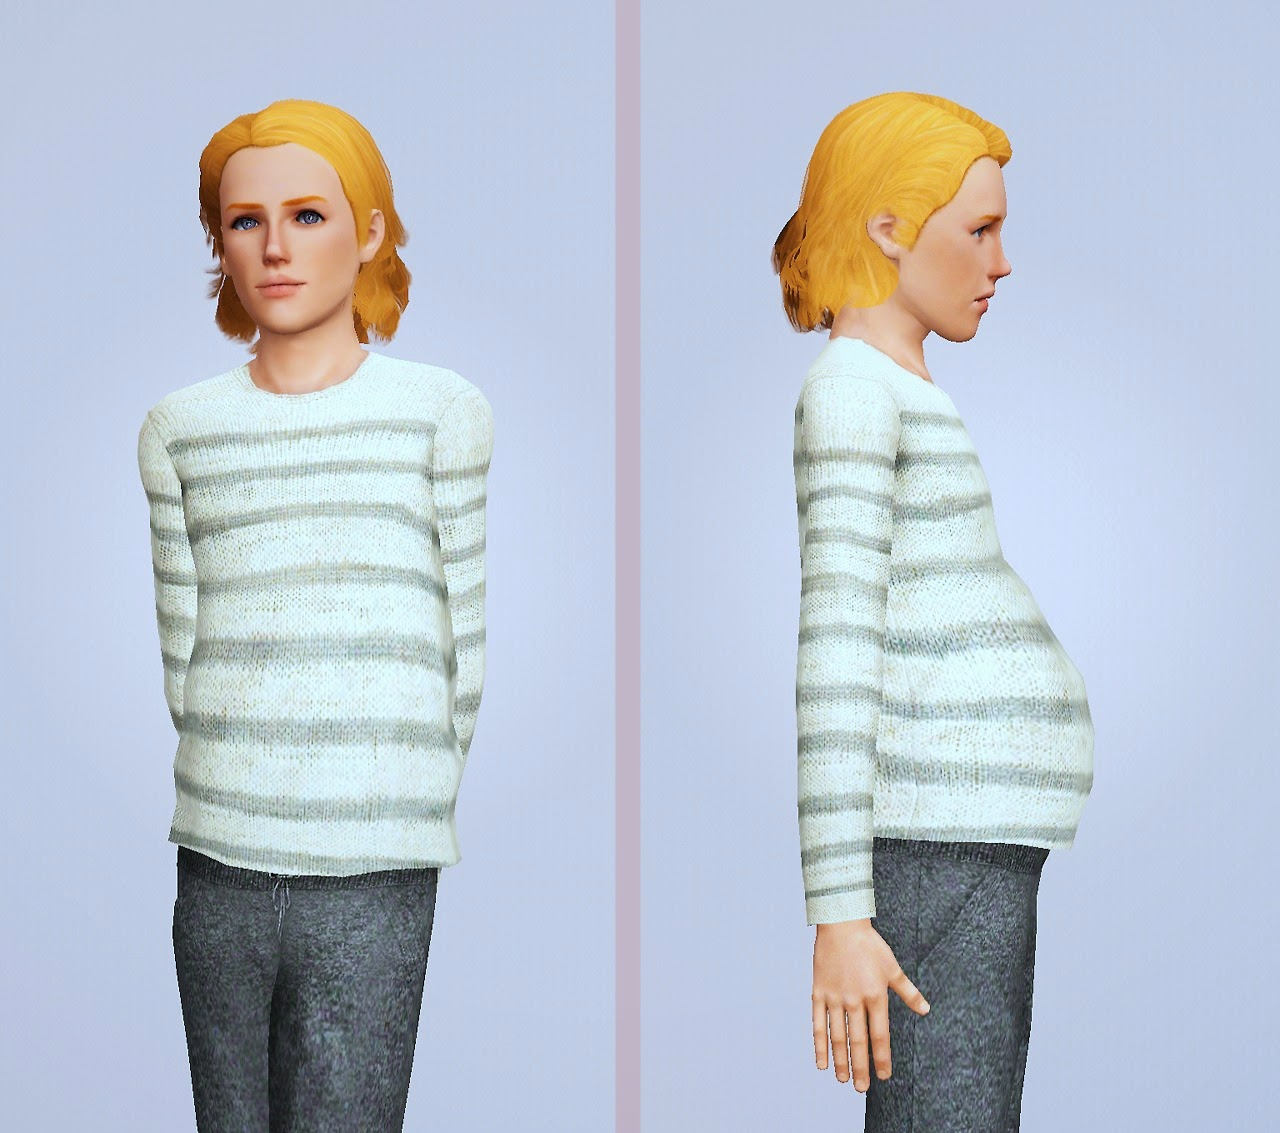 Sims male pregnancy clothes